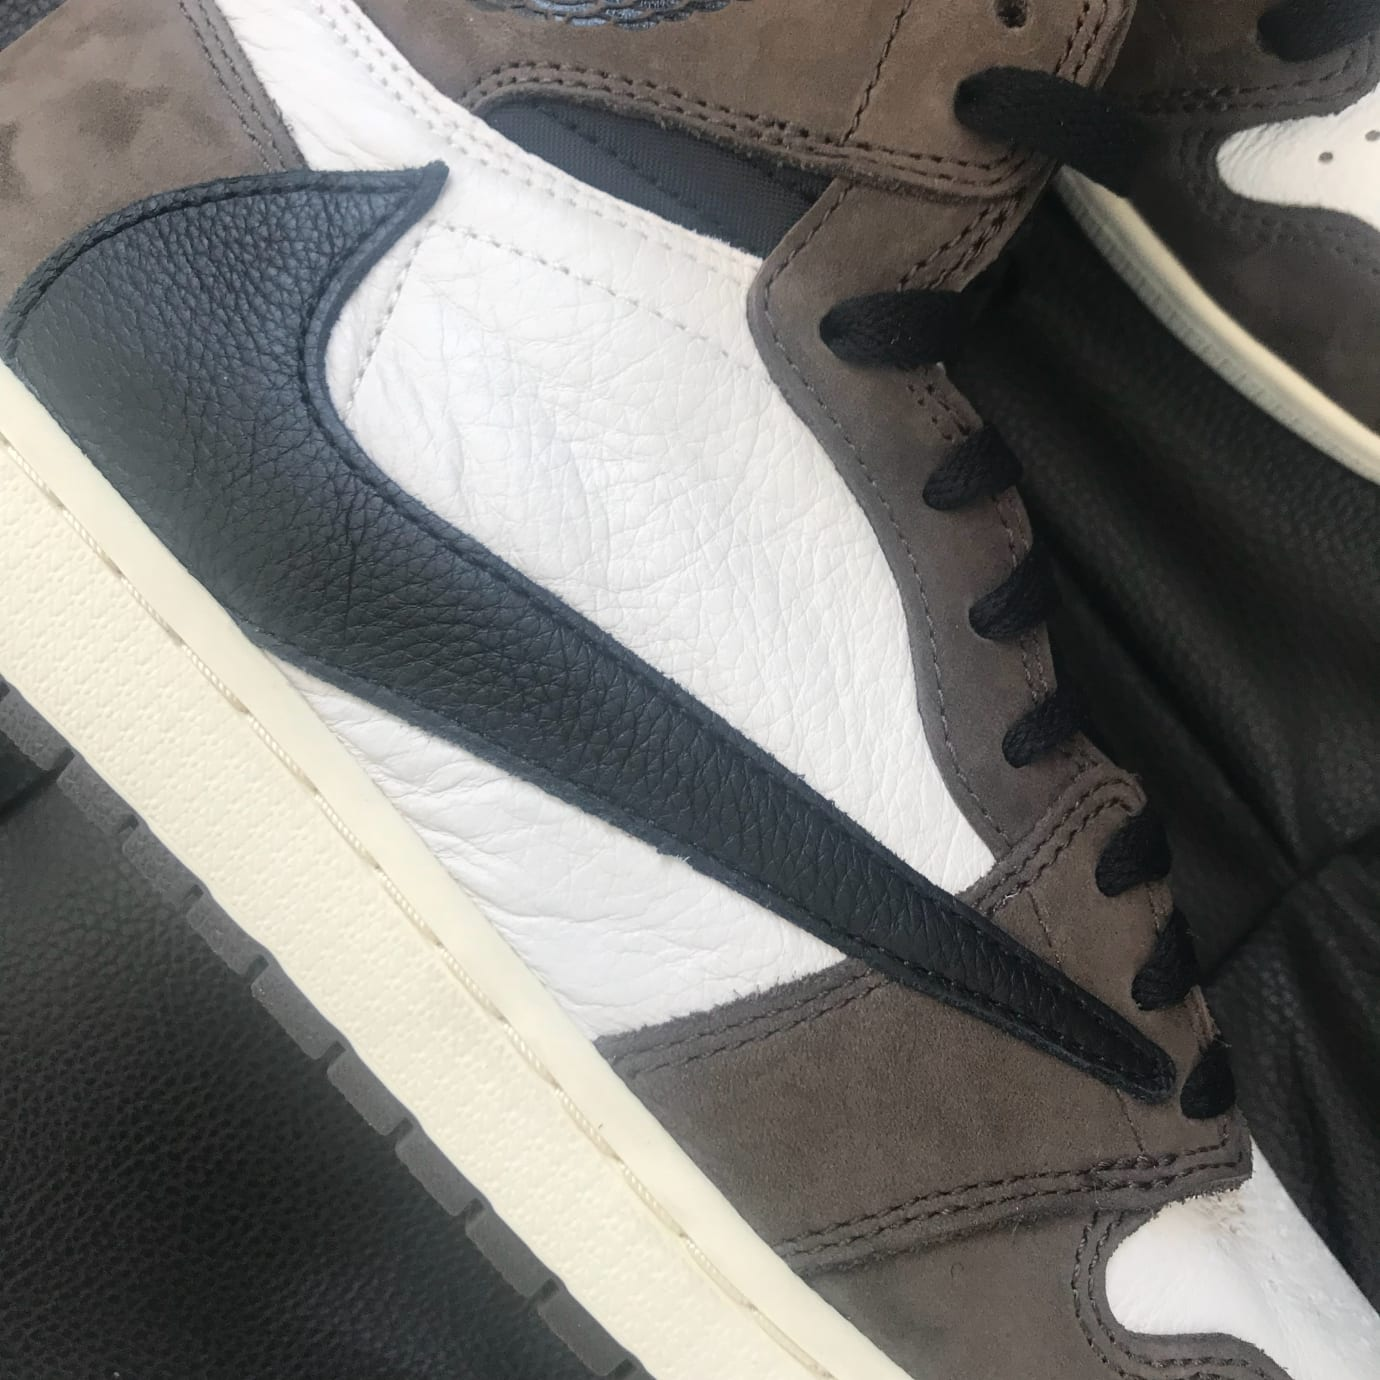 5c88601209bf3 Image via Weibo.cn Travis Scott x Air Jordan 1 High OG TS SP CD4487-100 ( Swoosh Detail